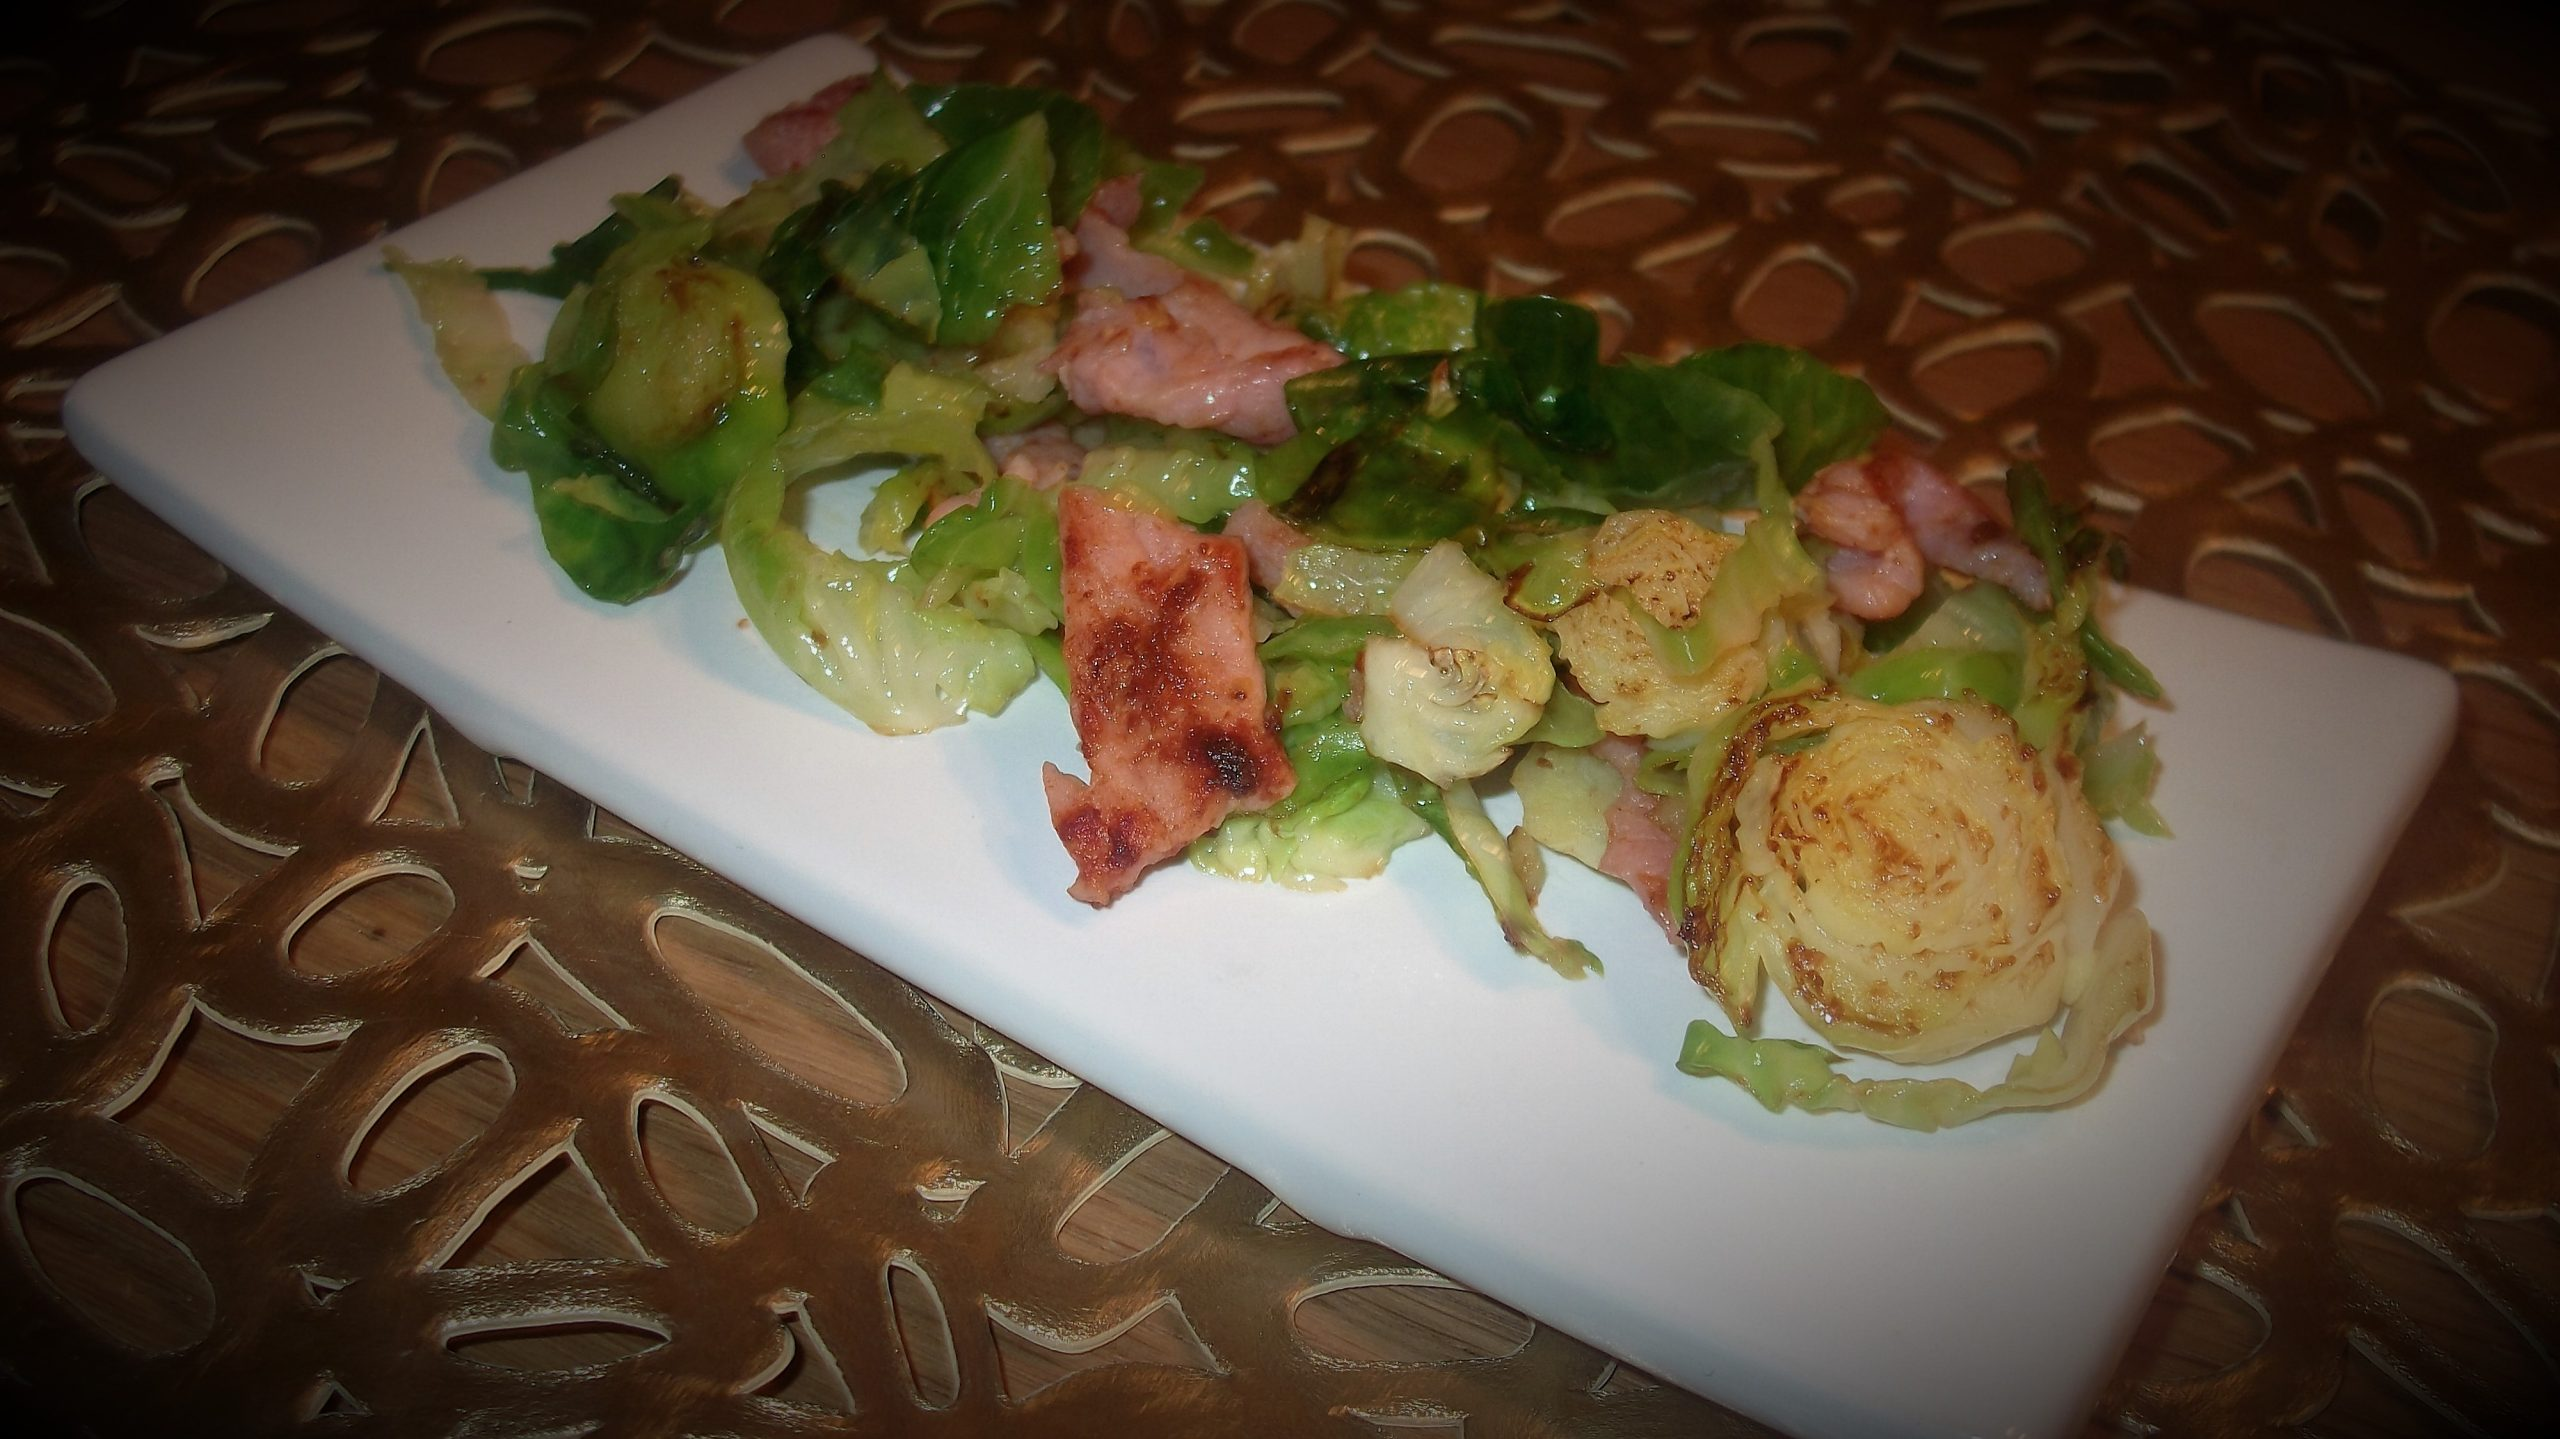 Pan fried sprouts with bacon